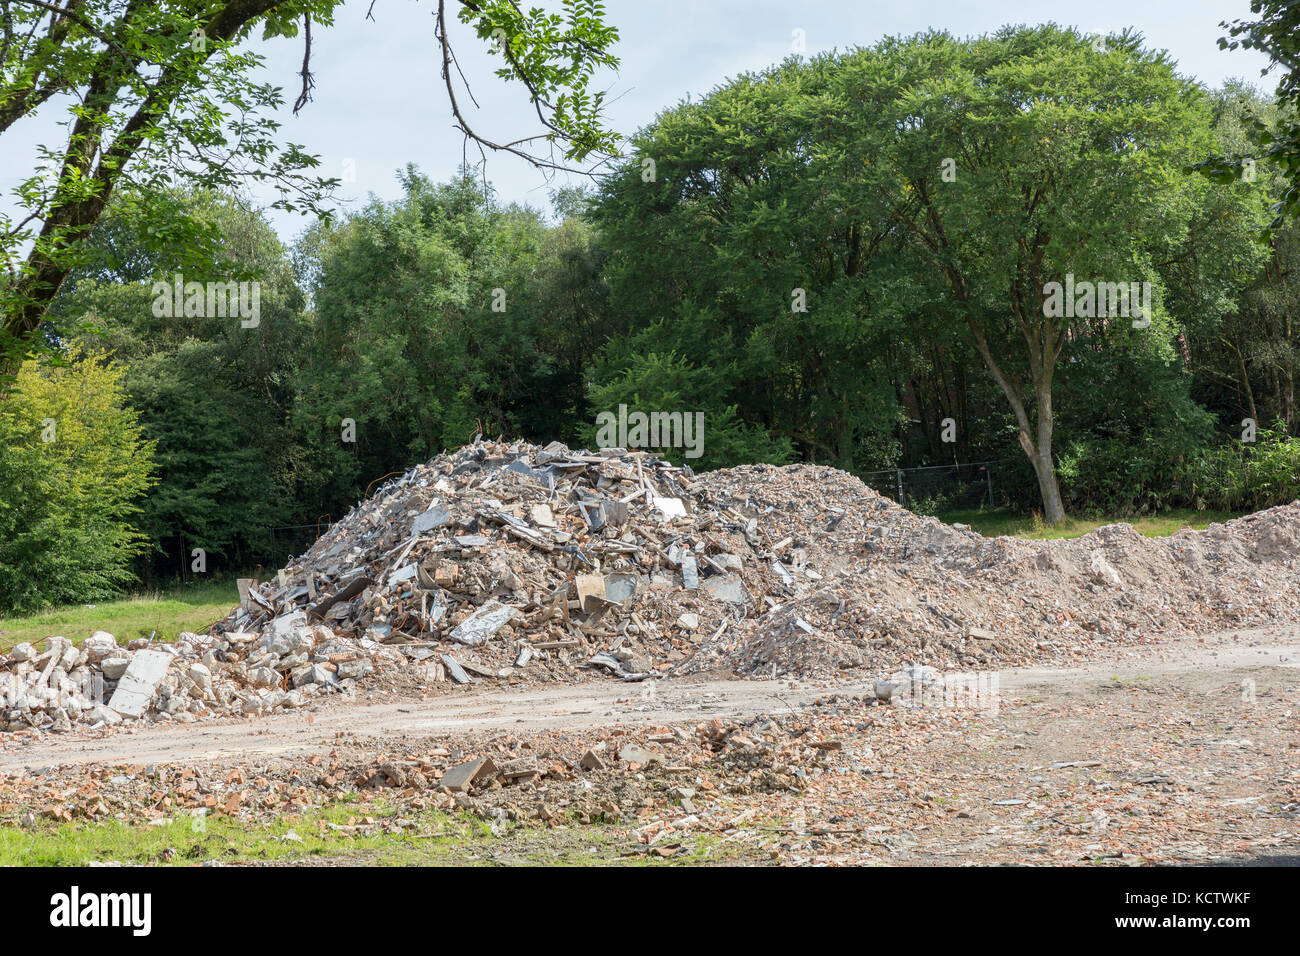 Site of John Dillwyn Llewellyn's manor house at Penllergare, Swansea, Wales, UK - Stock Image